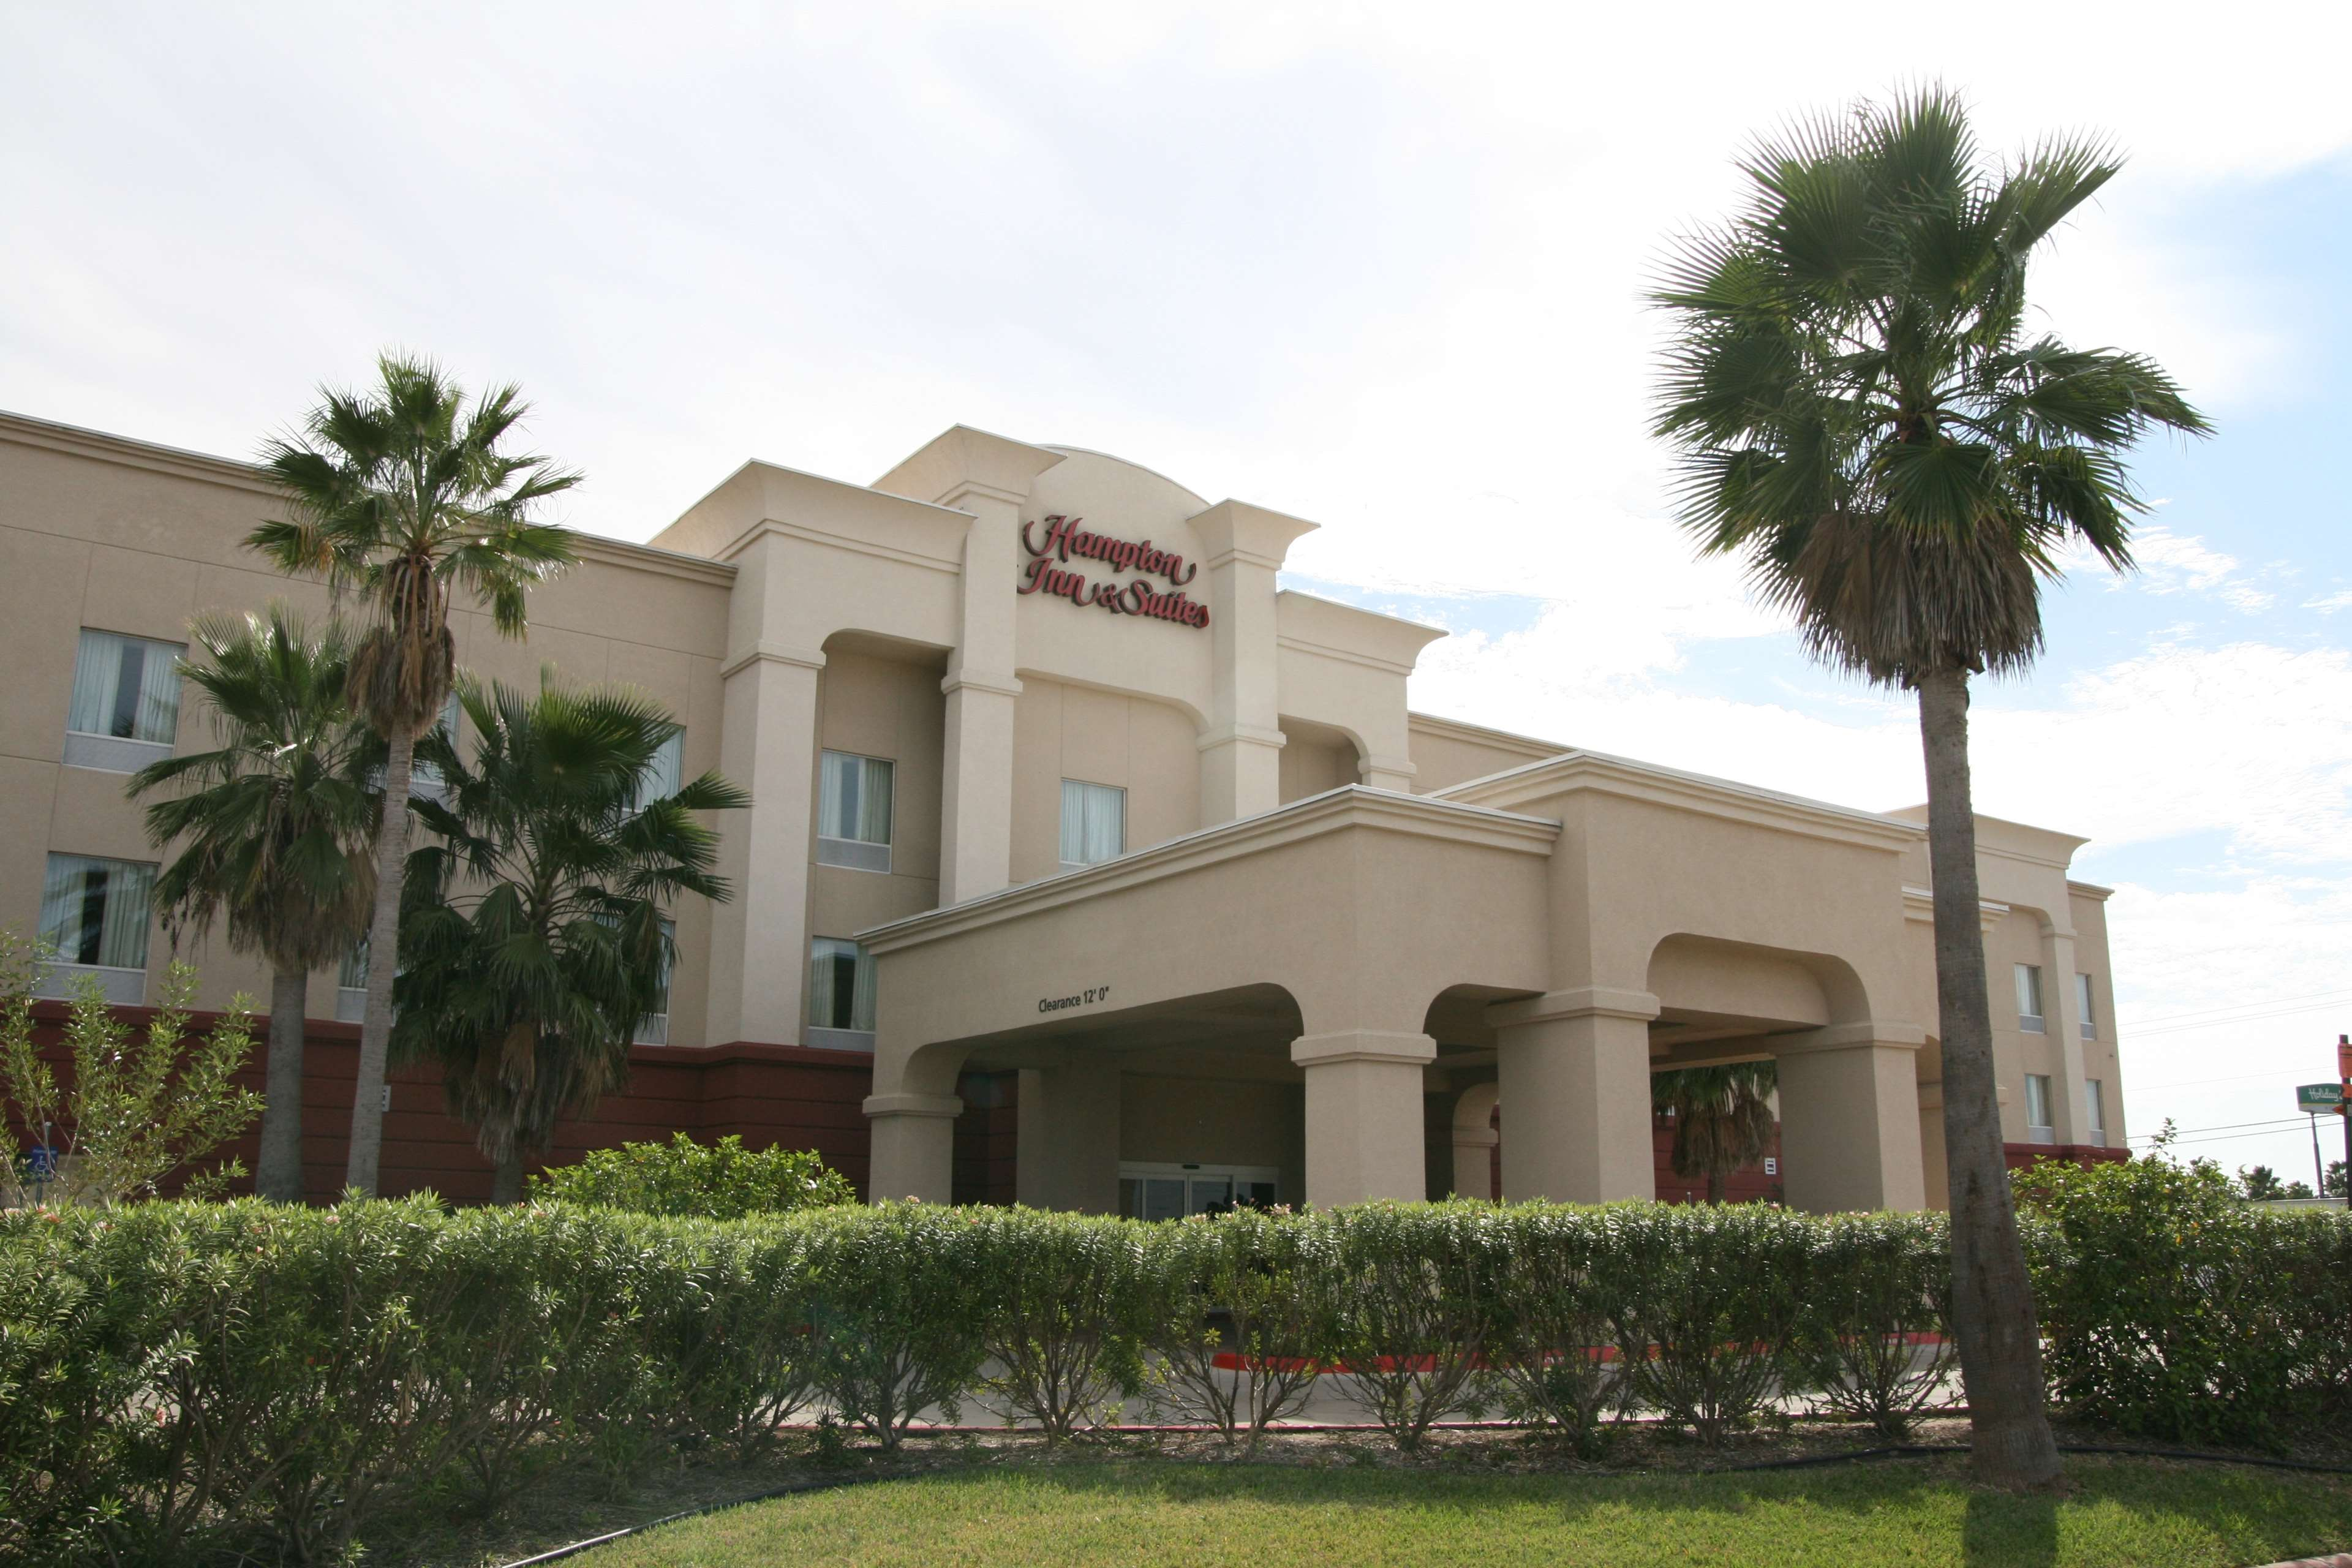 Hampton Inn and Suites Brownsville image 1